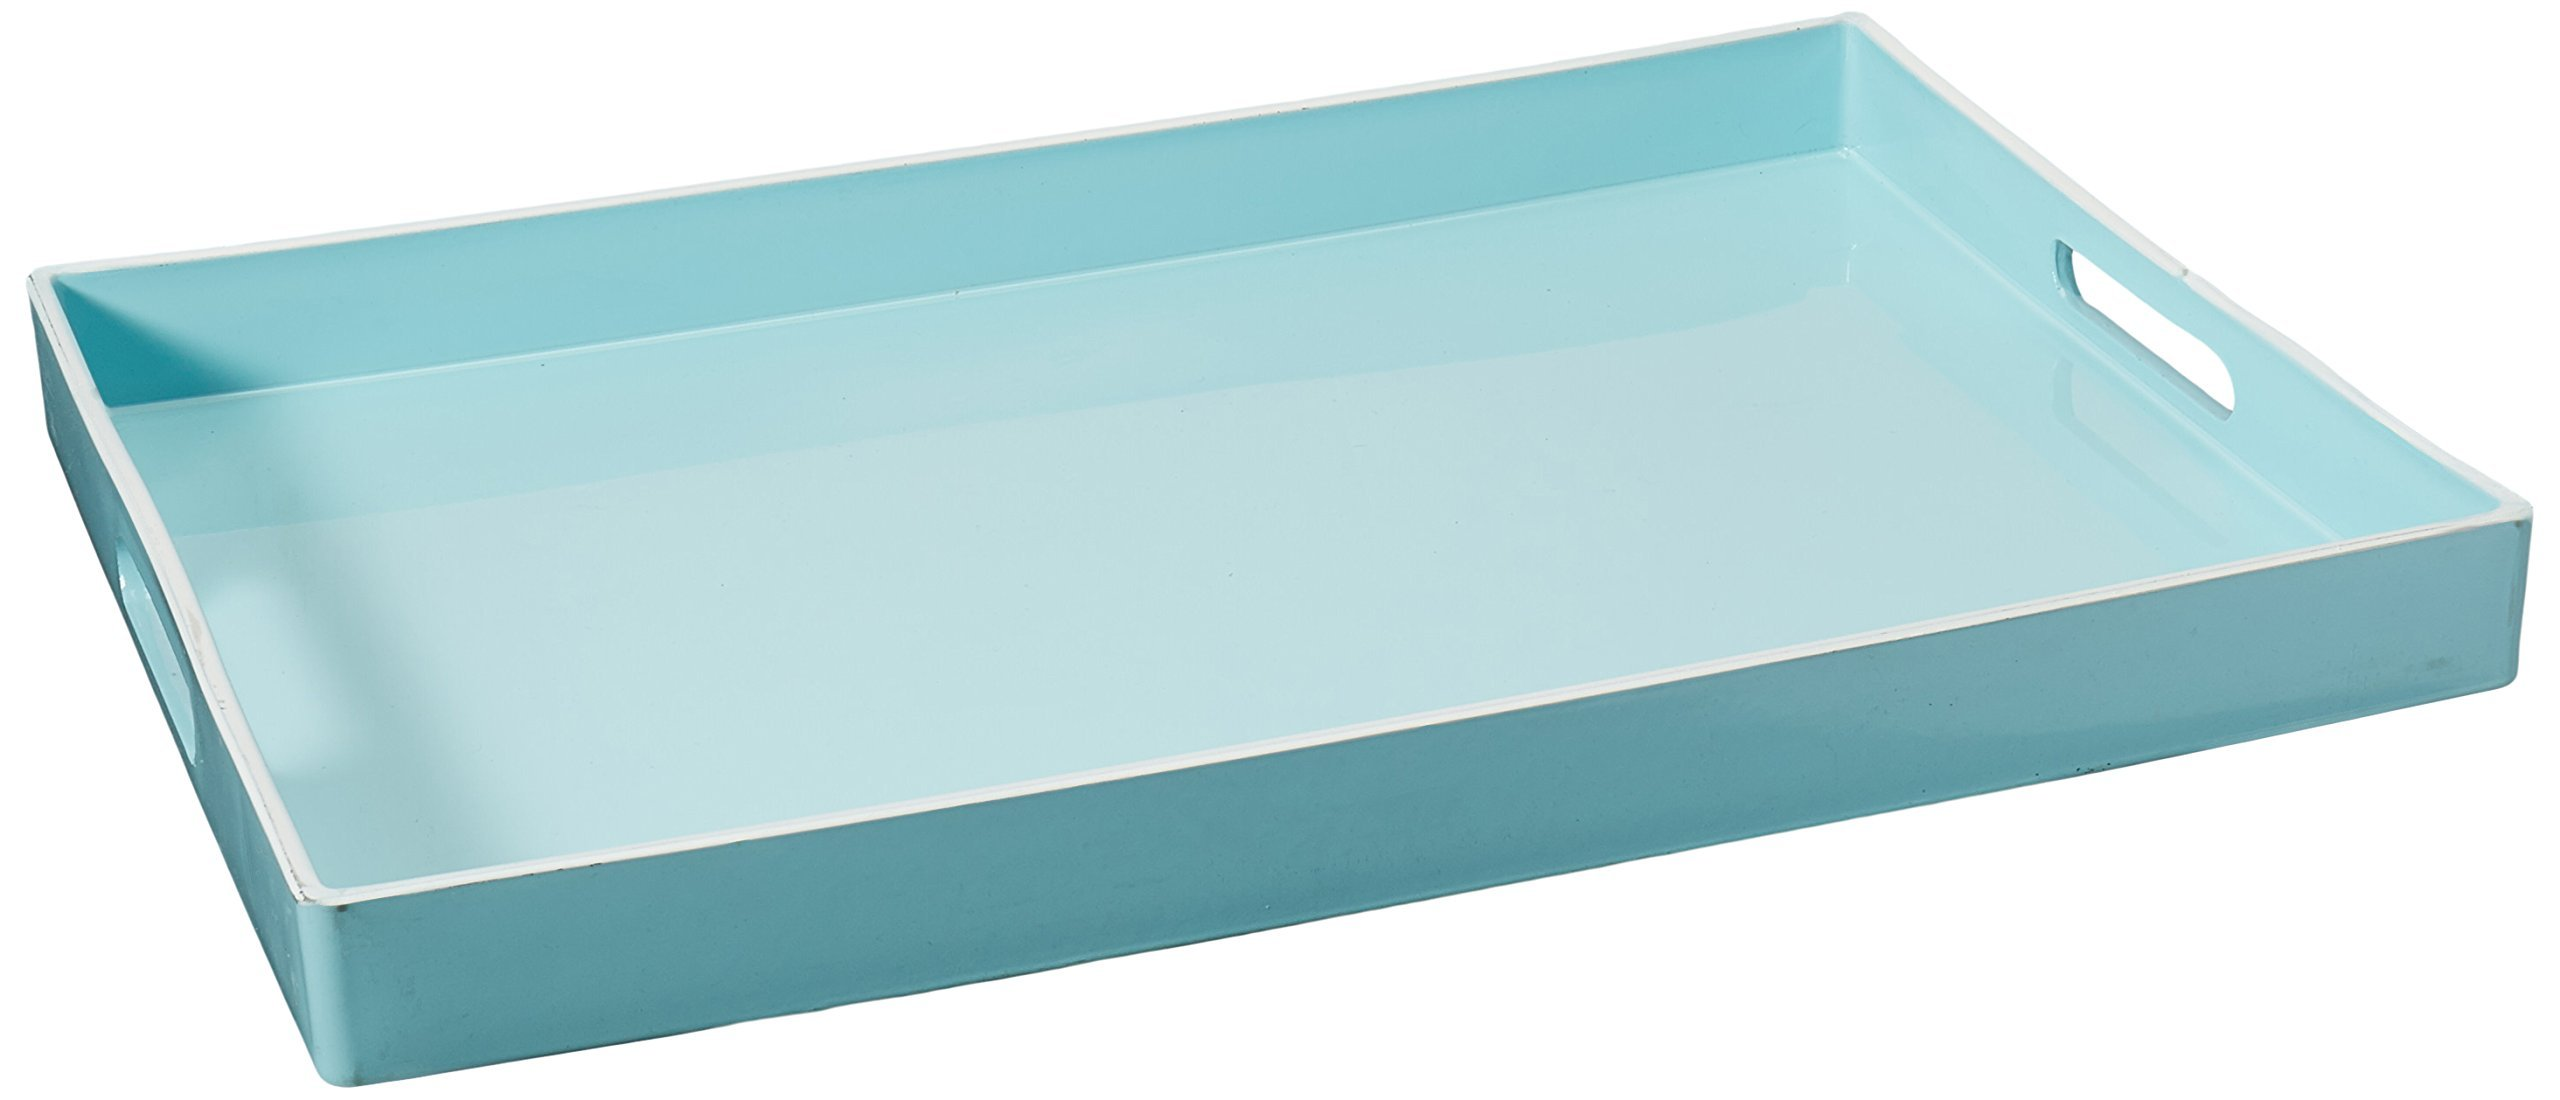 American Atelier Rectangular Tray with Handle, Teal